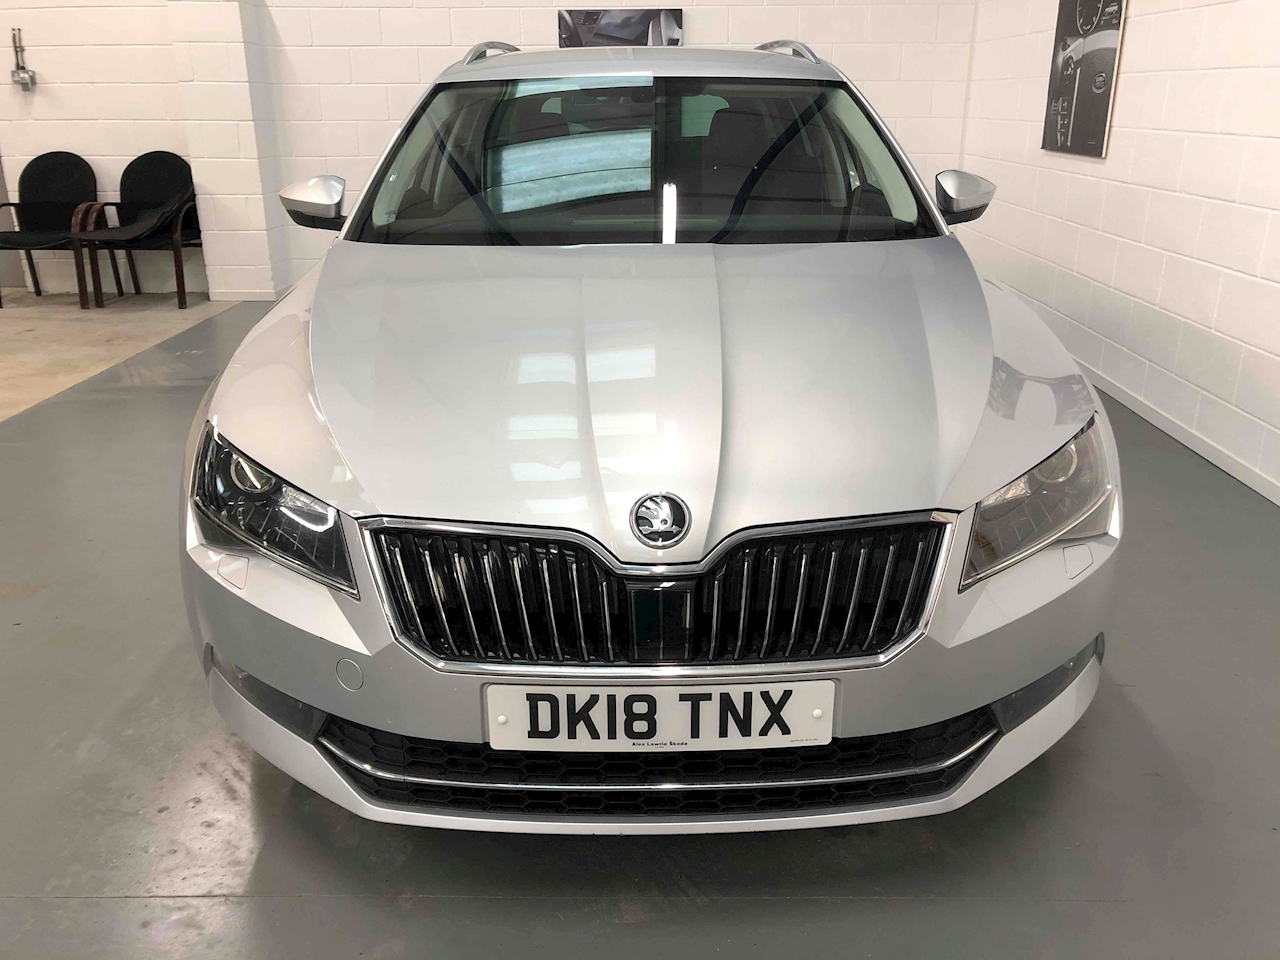 SKODA Superb SE L Executive Estate 2.0 DSG Diesel